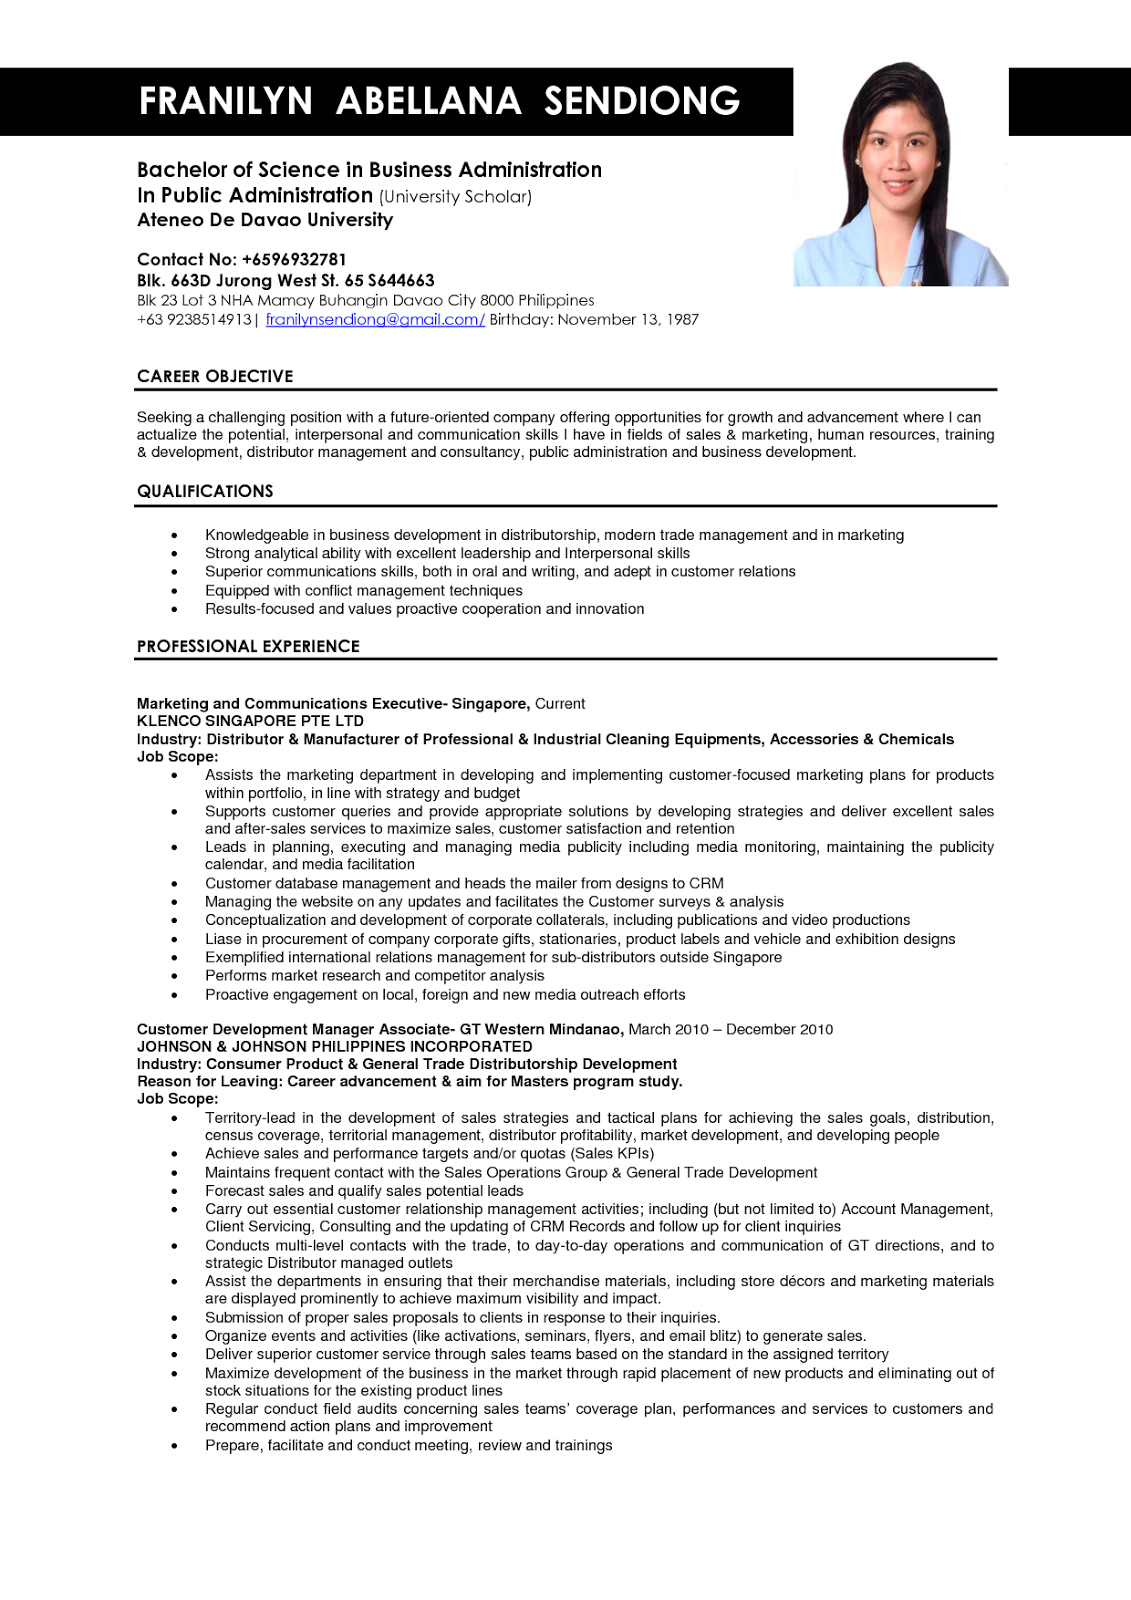 Simple Resume Template Site Concentrate On What You Want Resumestime